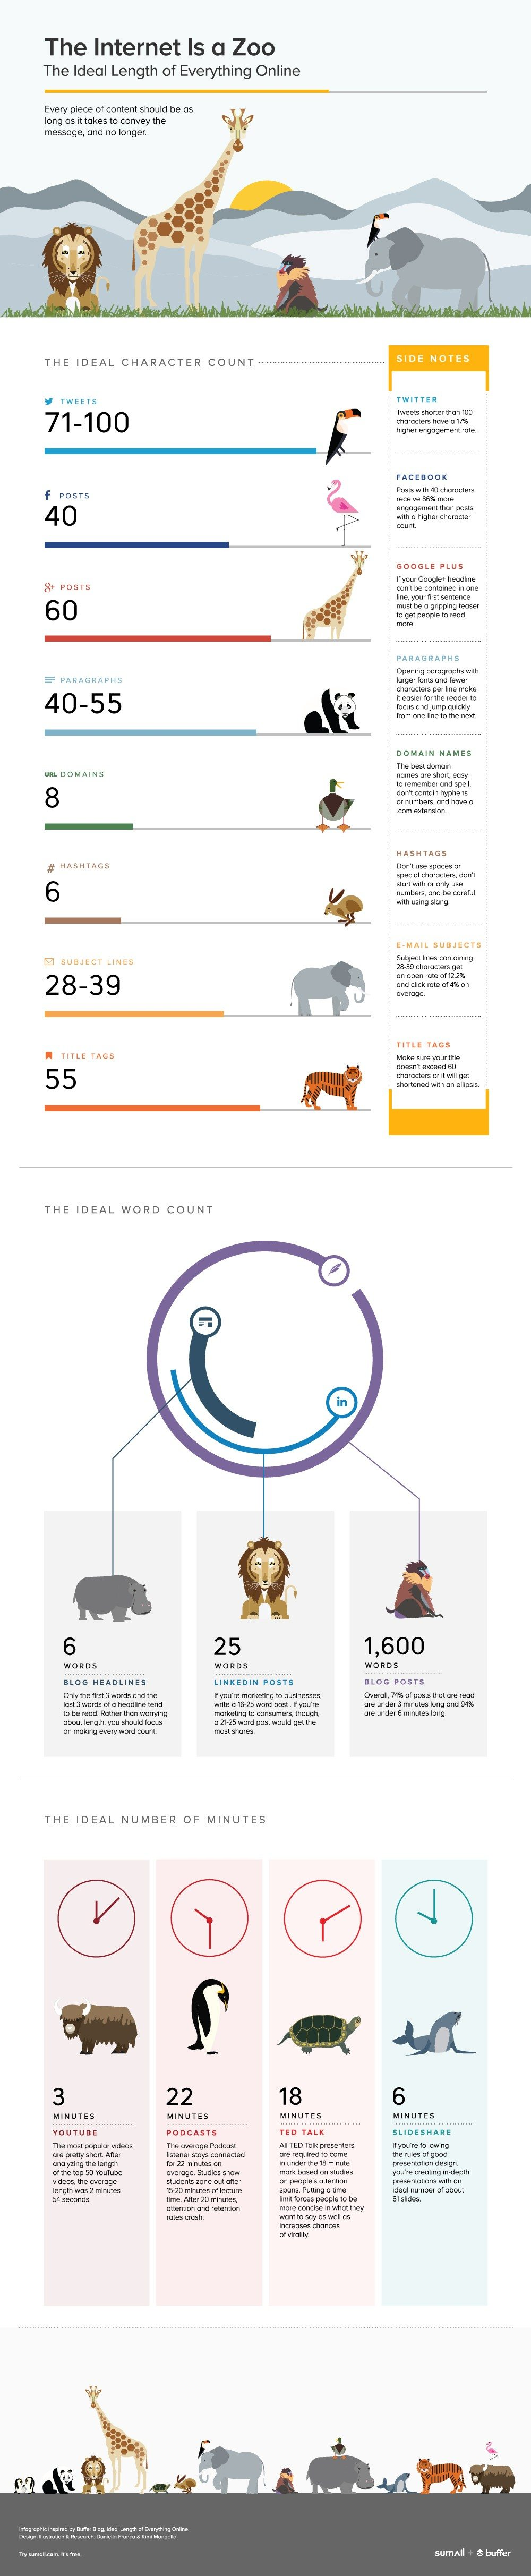 The Ideal Length of Everything Online by Buffer.com Infographic